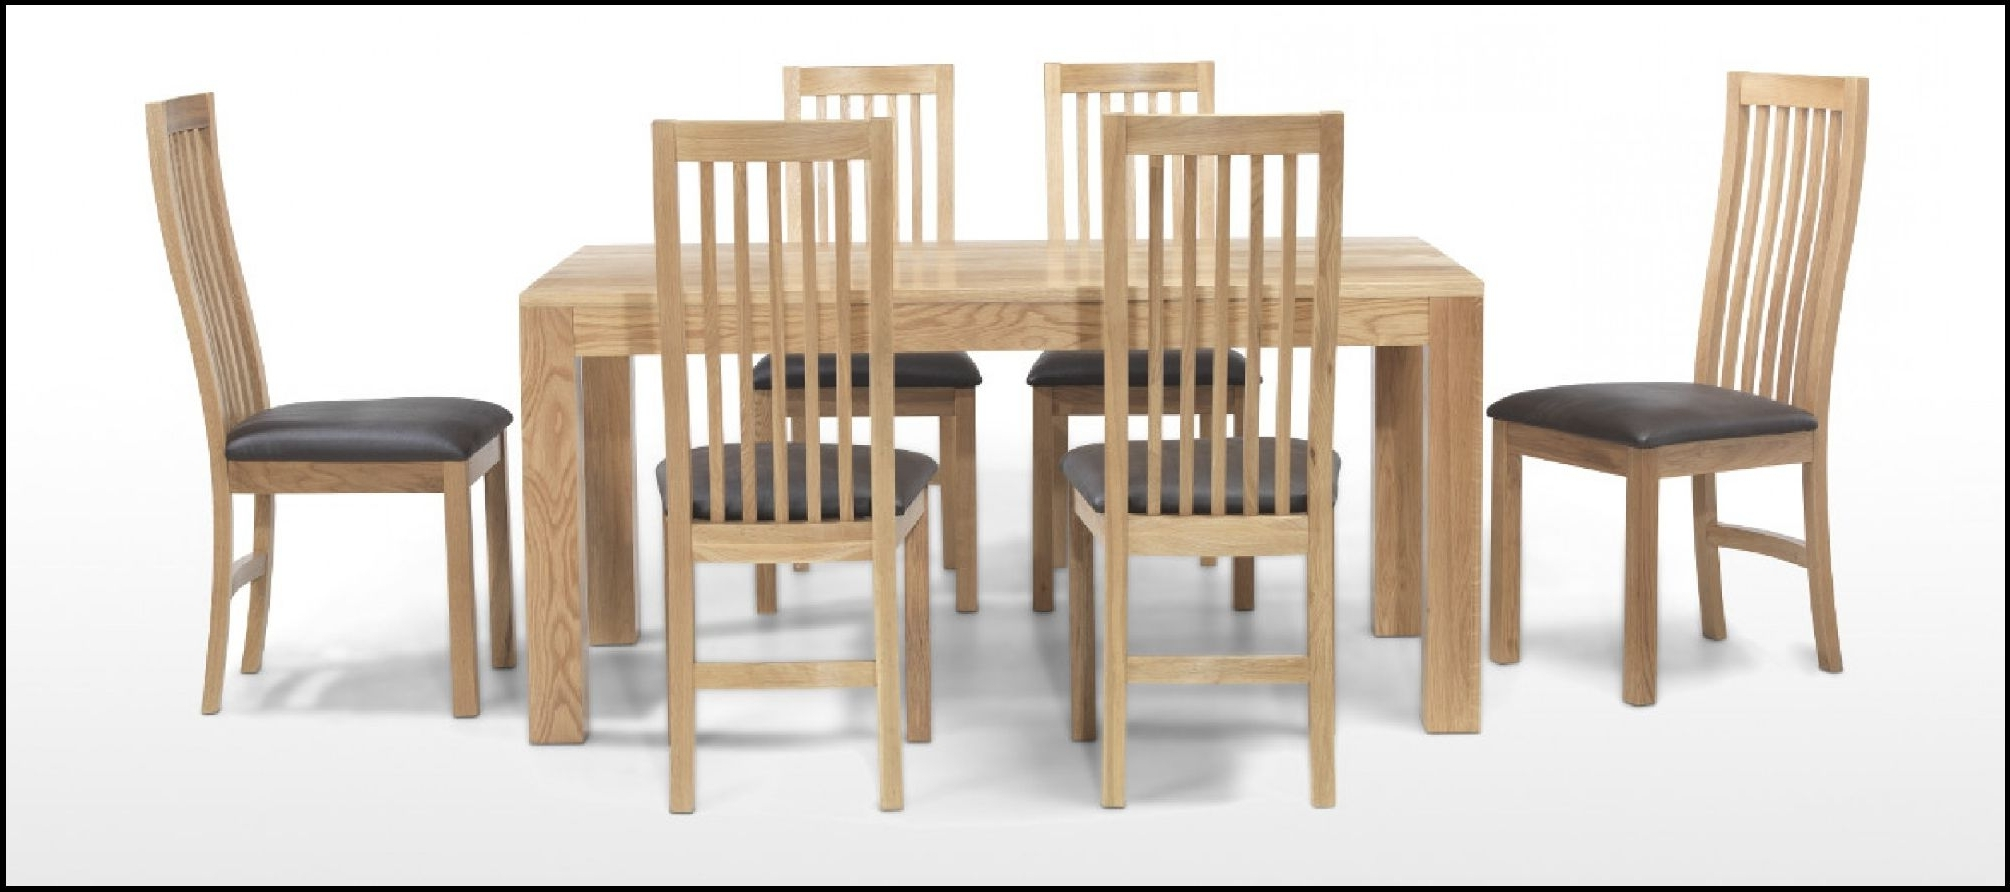 Popular Oak Dining Tables Sets In Charming How To Get The Oak Dining Sets With Round Oak Dining Table (View 14 of 25)